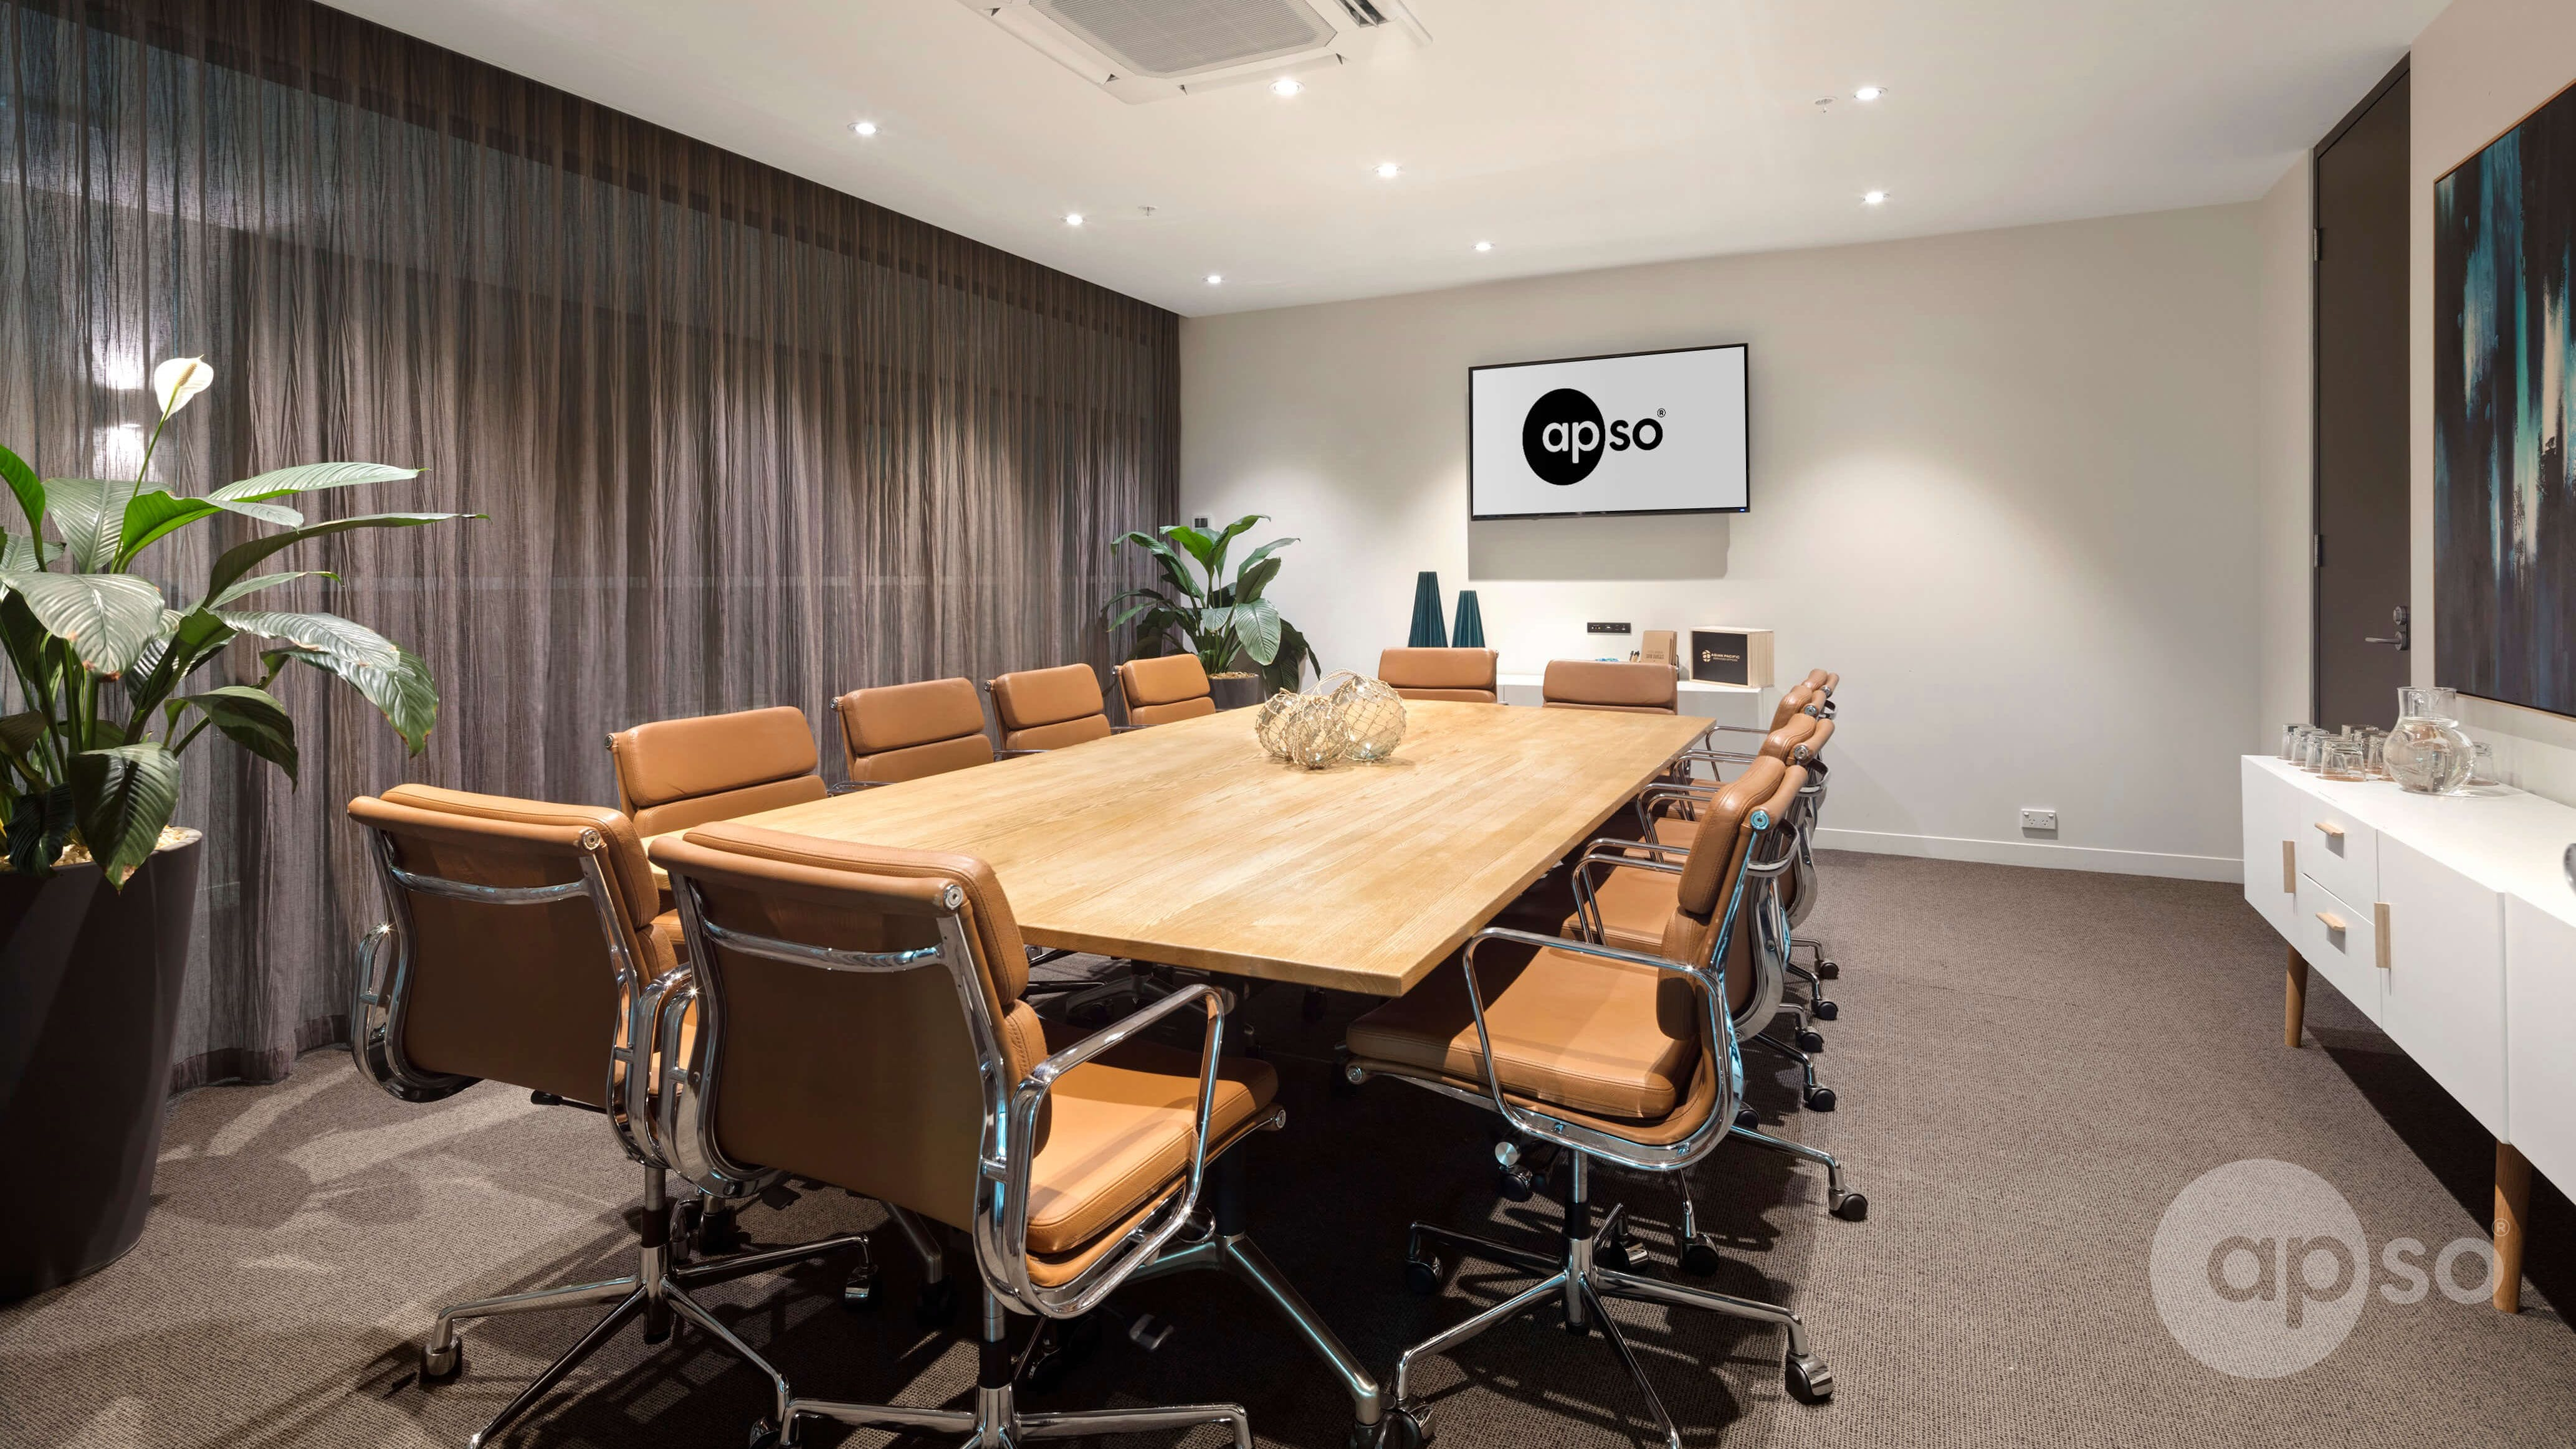 Suite G10abcd, private office at Corporate One, image 6